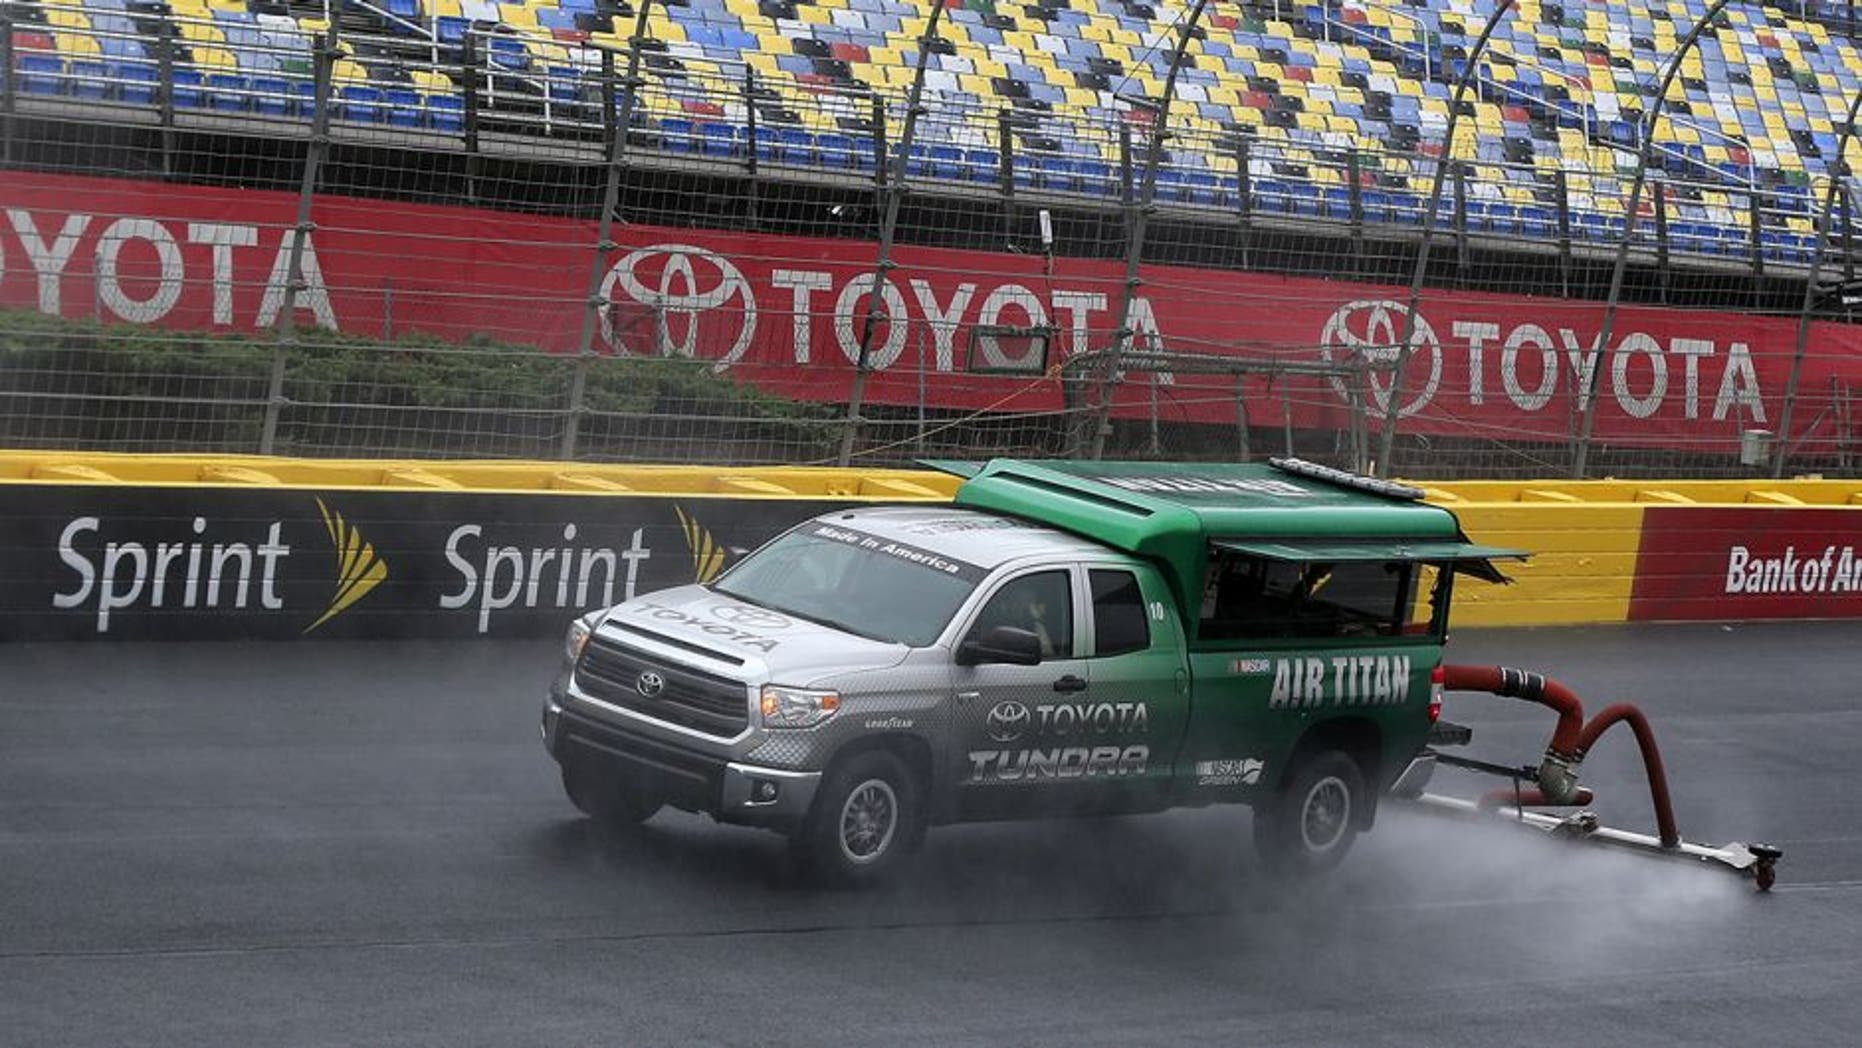 CHARLOTTE, NC - MAY 19: An Air Titan 2.0 works to dry the track prior to practice for the NASCAR Camping World Truck Series North Carolina Education Lottery 200 at Charlotte Motor Speedway on May 19, 2016 in Charlotte, North Carolina. (Photo by Matt Sullivan/NASCAR via Getty Images)